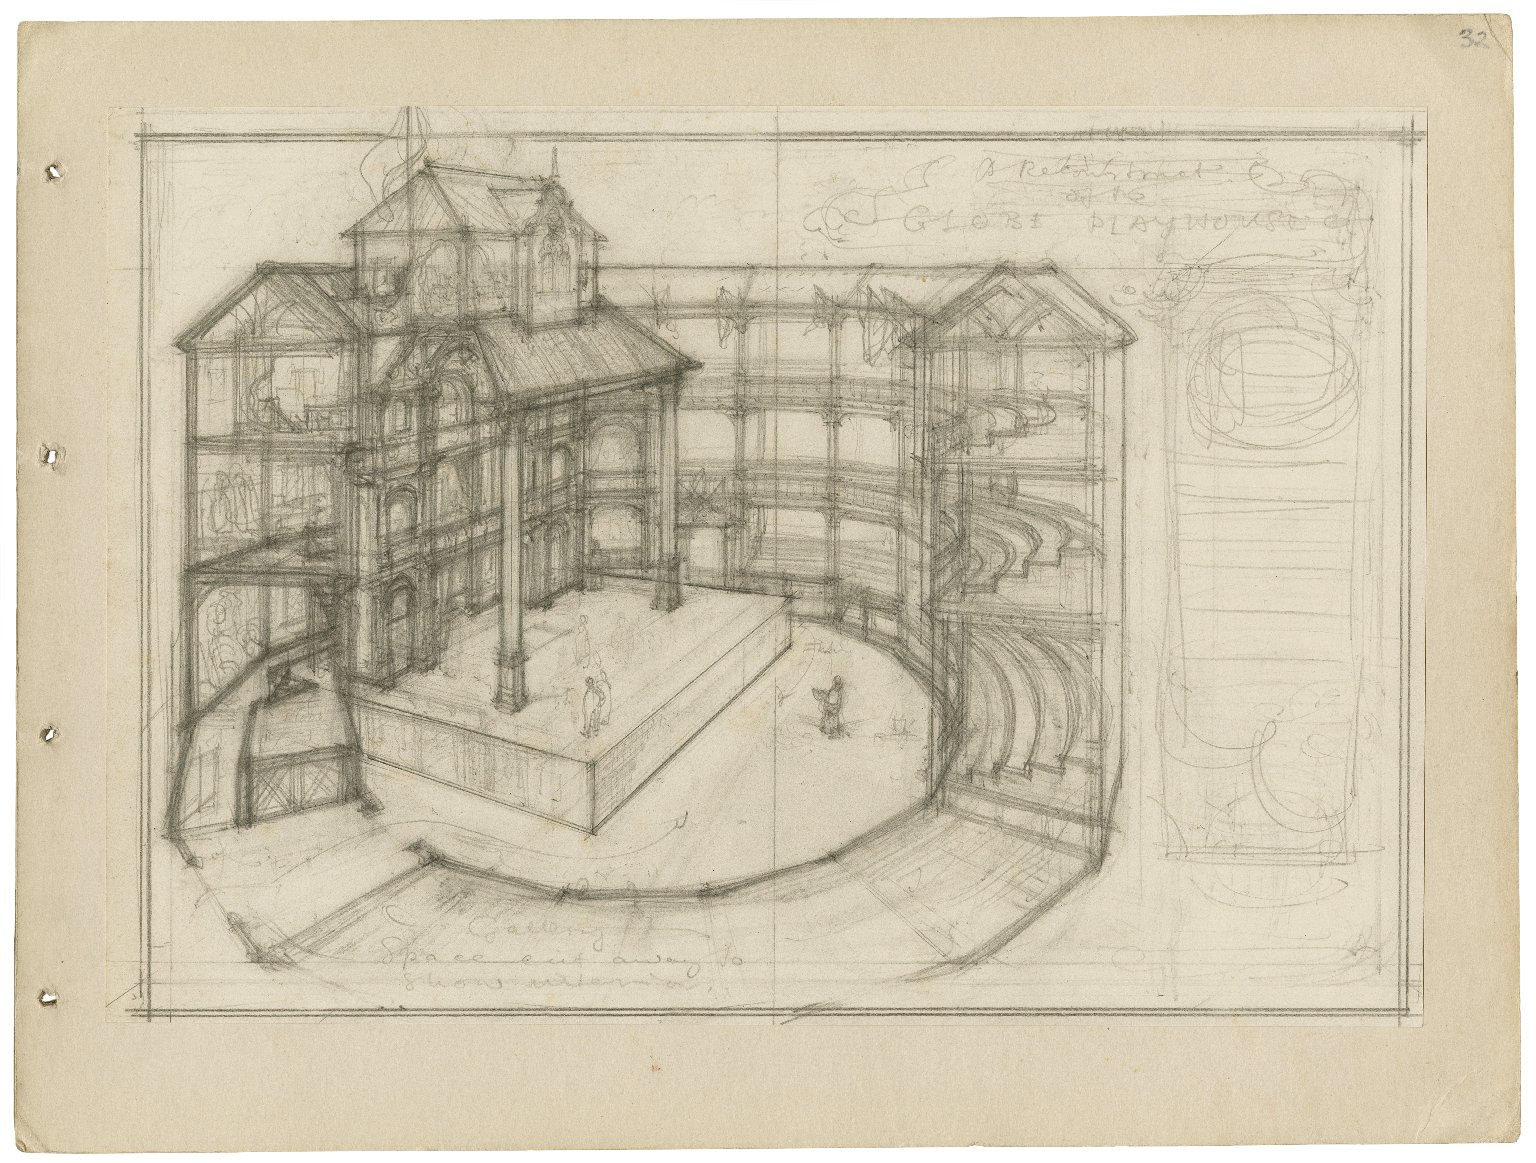 The Globe playhouse. Preparatory drawing in pencil for a fully developed reconstruction (pen and ink illustration later published in Shakespeare and the Players).